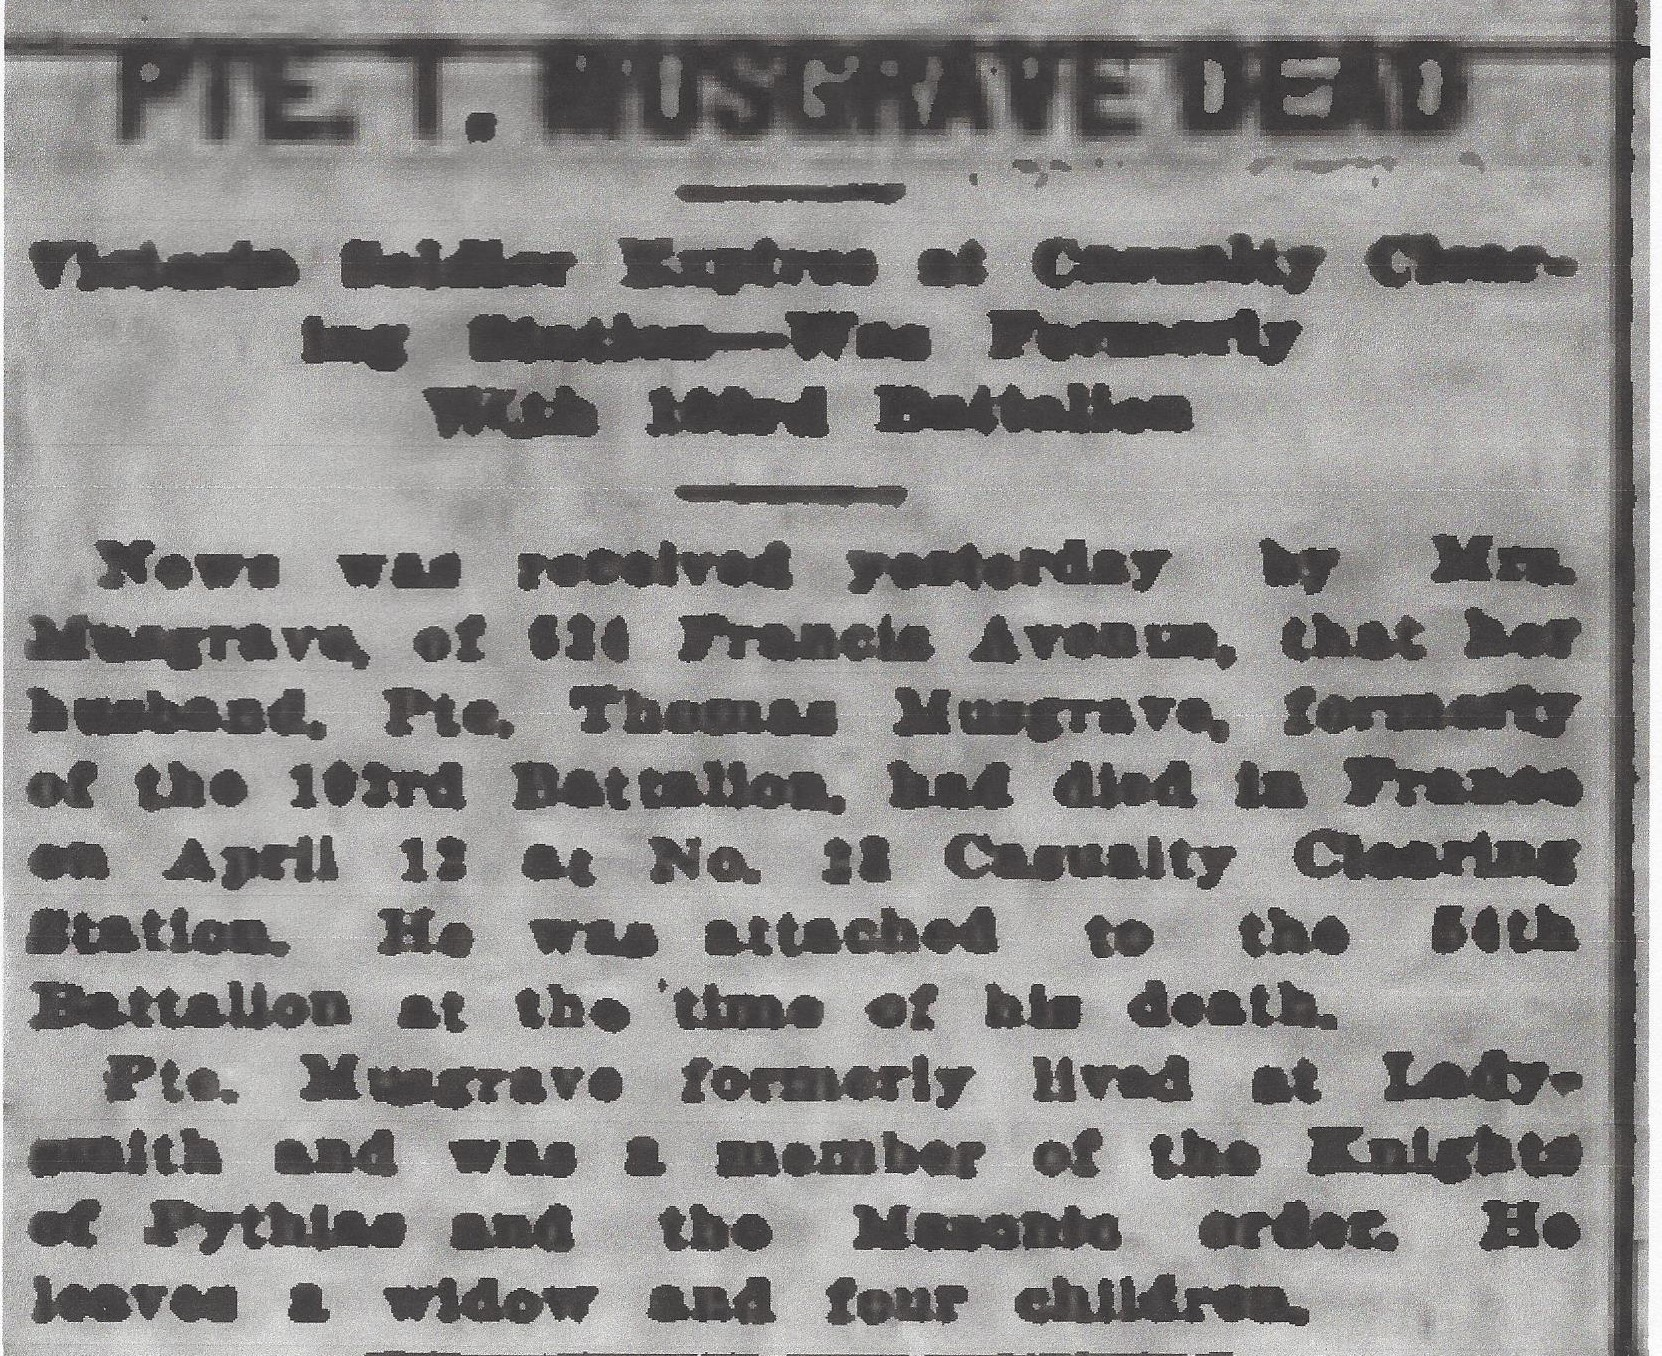 Newspaper clipping – From the Daily Colonist of April 29, 1917. Image taken from web address of http://archive.org/stream/dailycolonist59y121uvic#page/n0/mode/1up